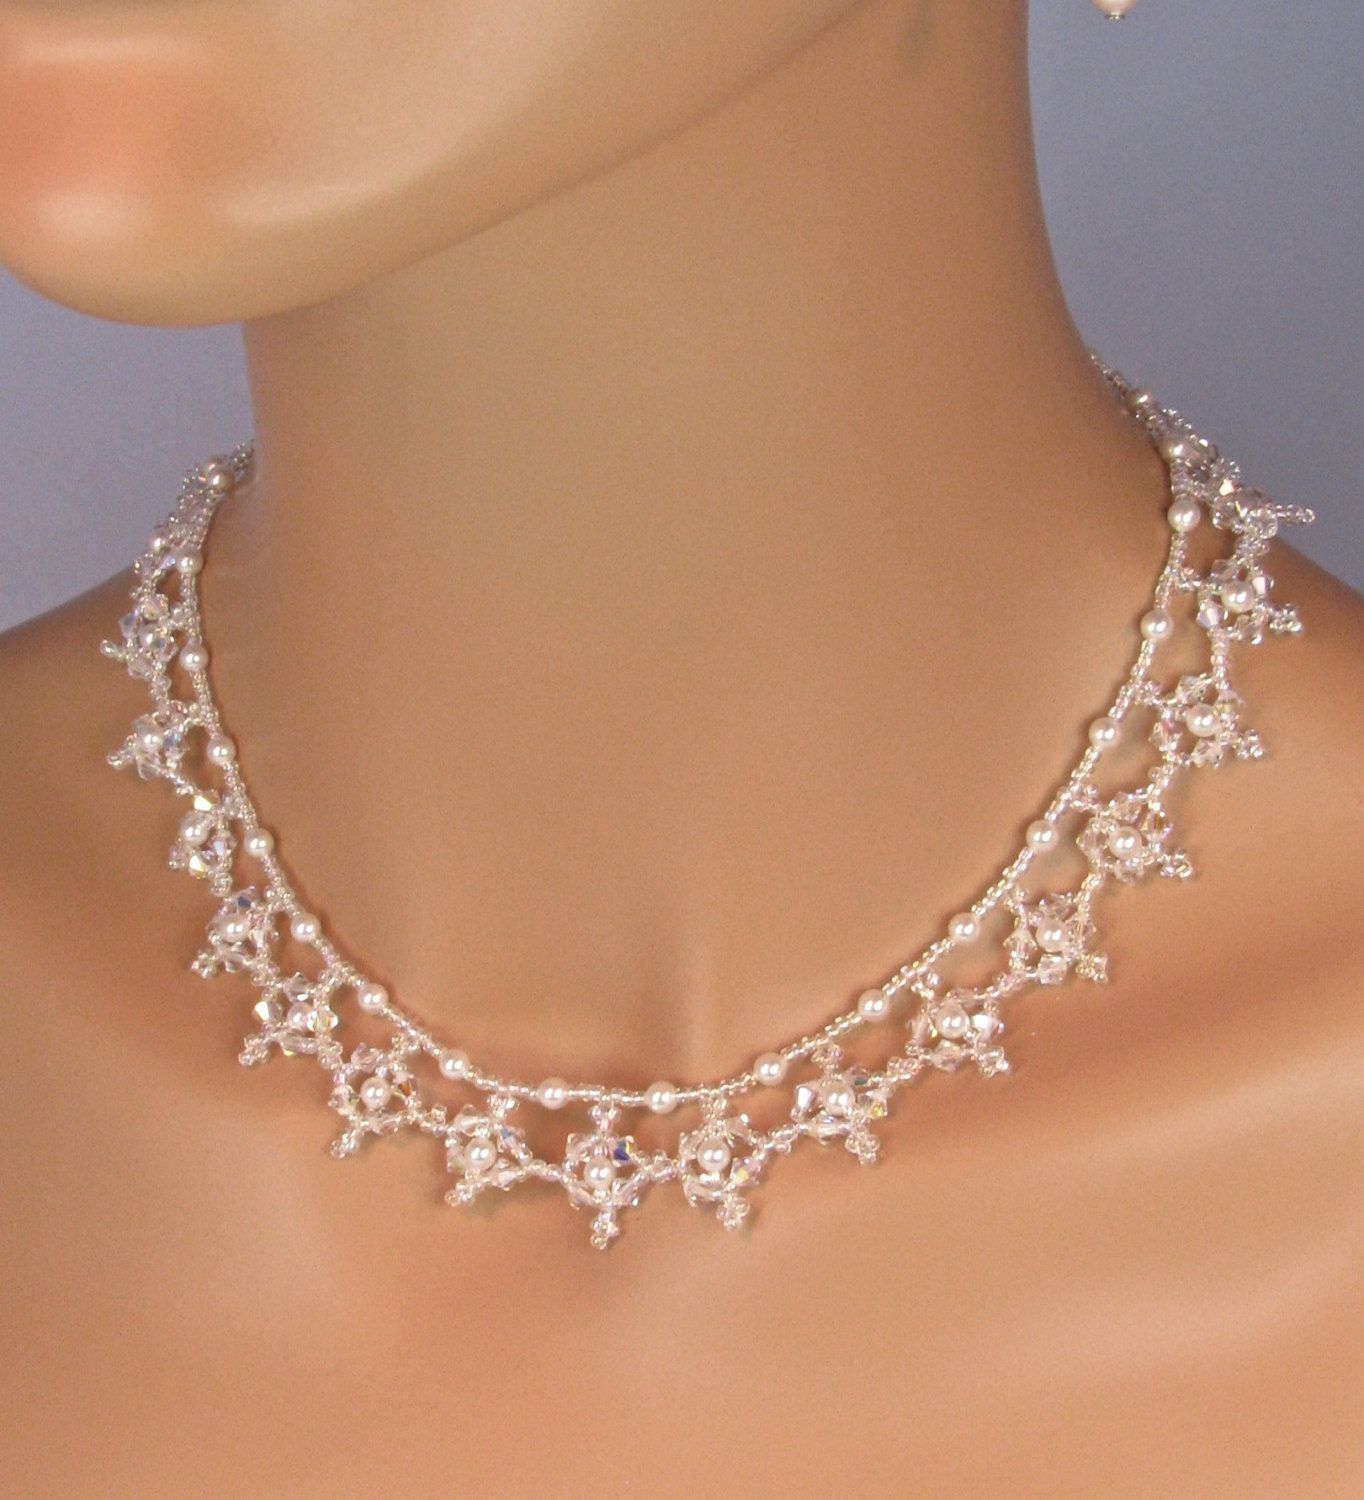 Winter Wedding Jewelry Set Snowflake Necklace Winter Wedding Jewelry